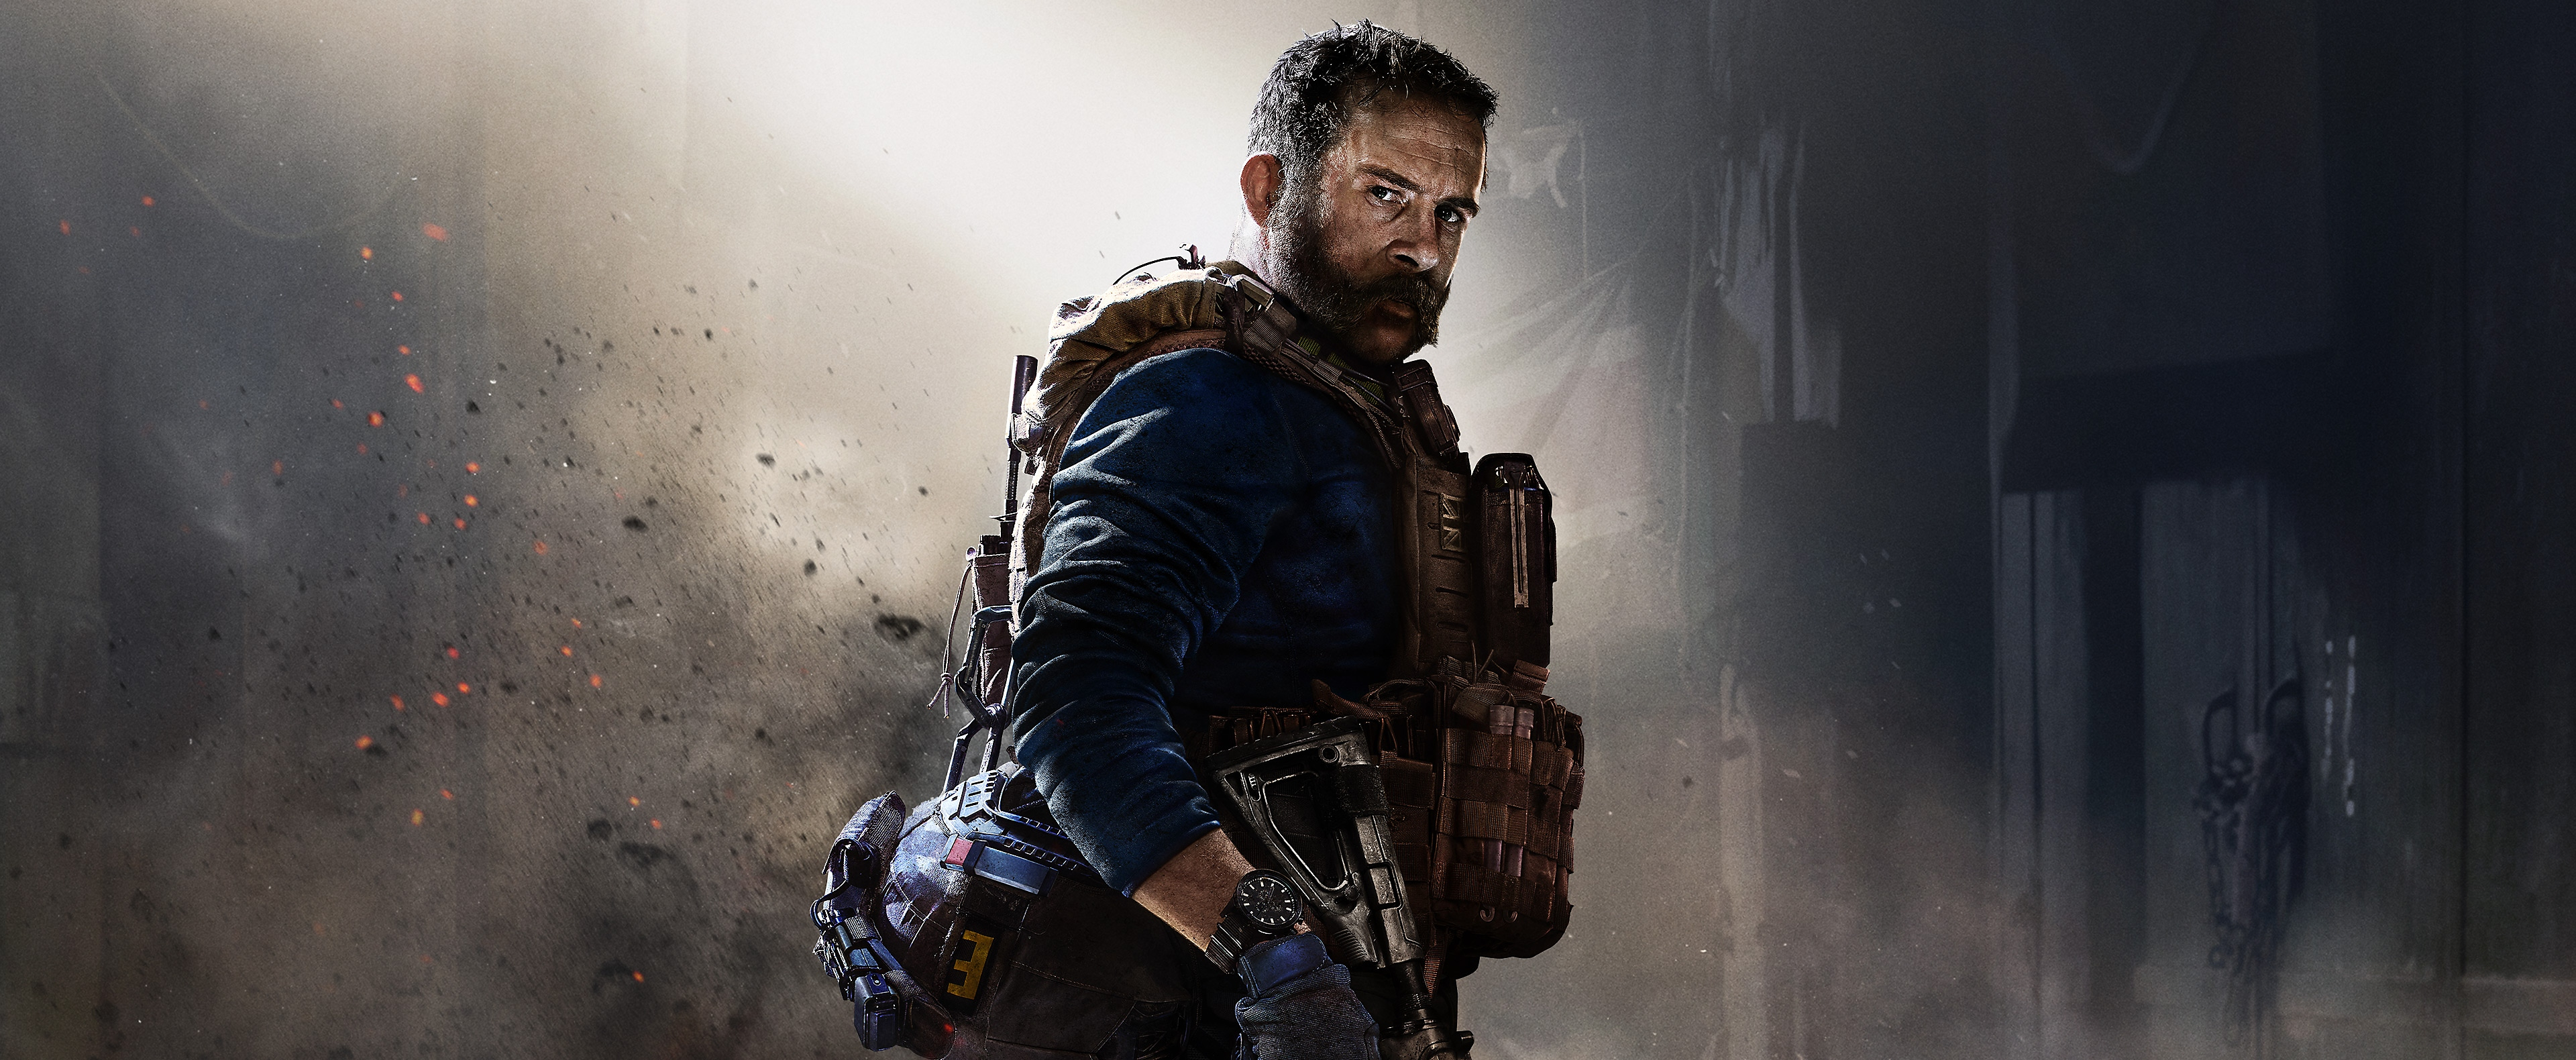 Call of Duty: Modern Warfare - official key art